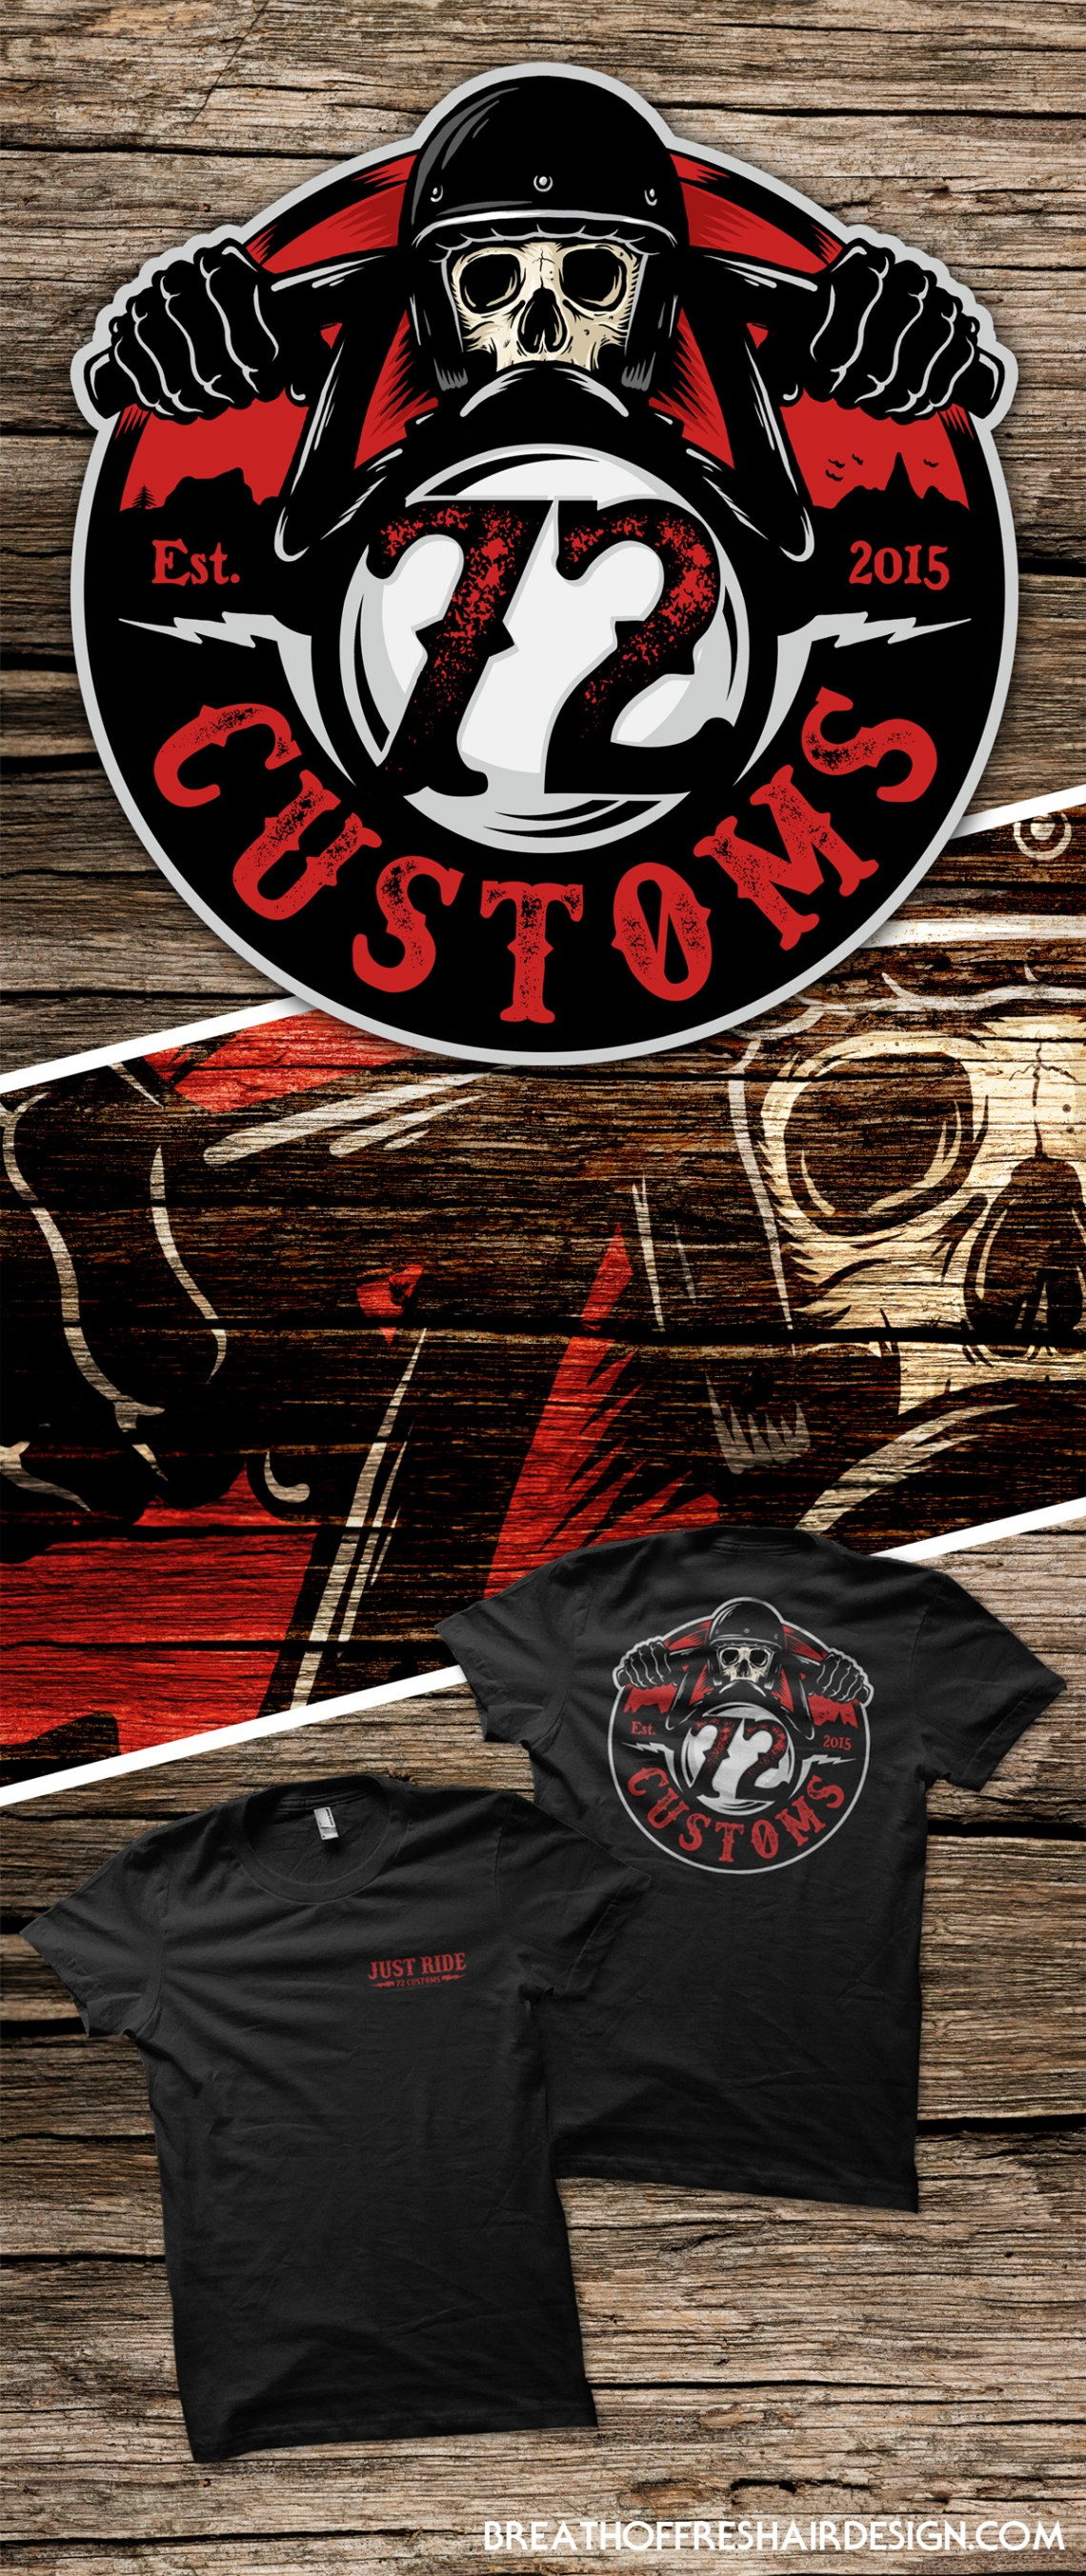 72 Customs, Logo, Illustration, Design, Motorcycles, Choppers, Skull, Graphic Design, Toronto, Custom Art, T-Shirt Design